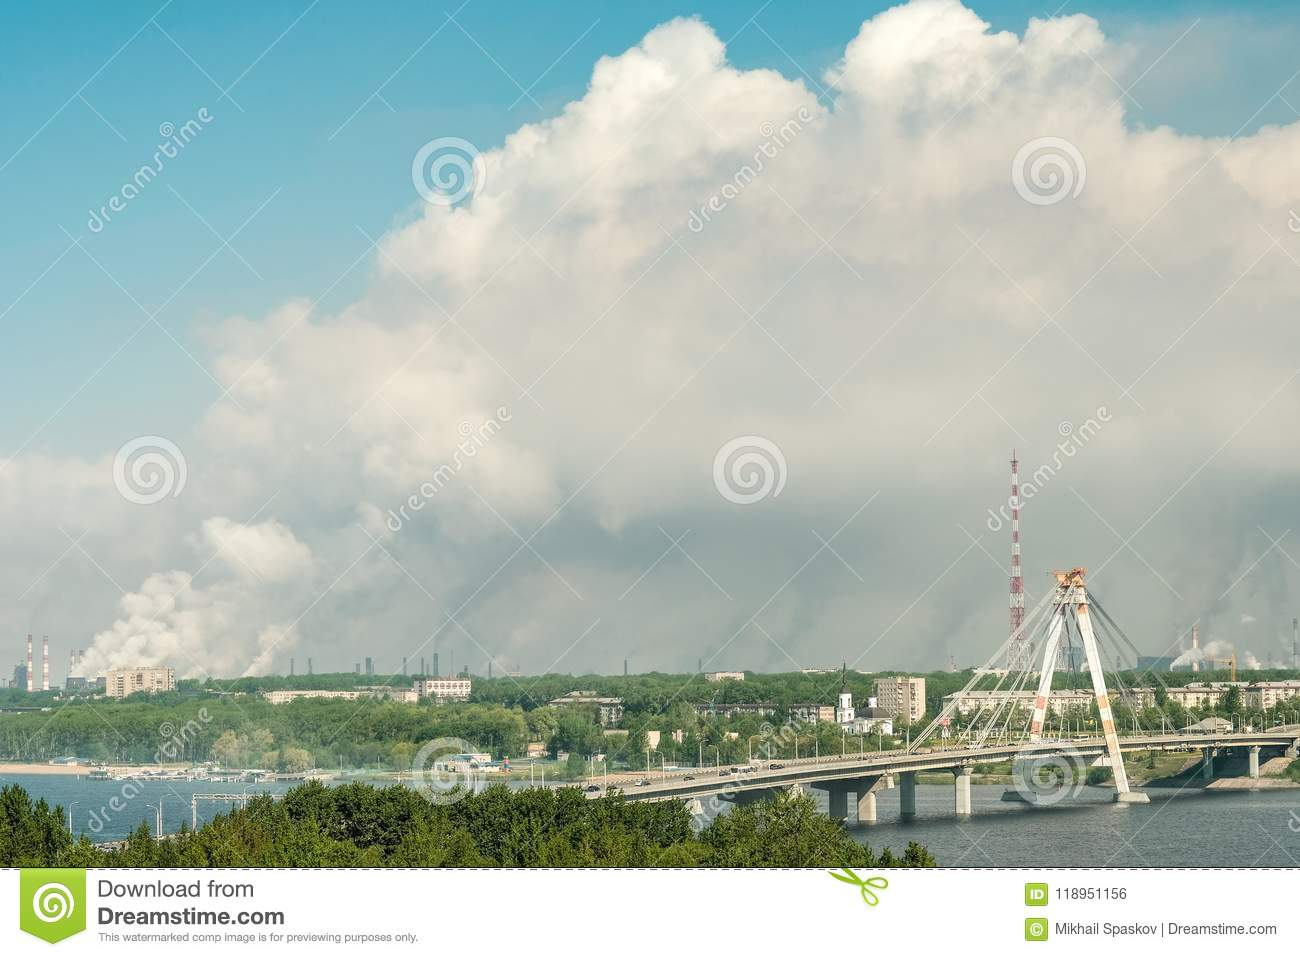 The most polluted city in Russia is Cherepovets. Smoke from the pipes smog clouds over the city. View from the height